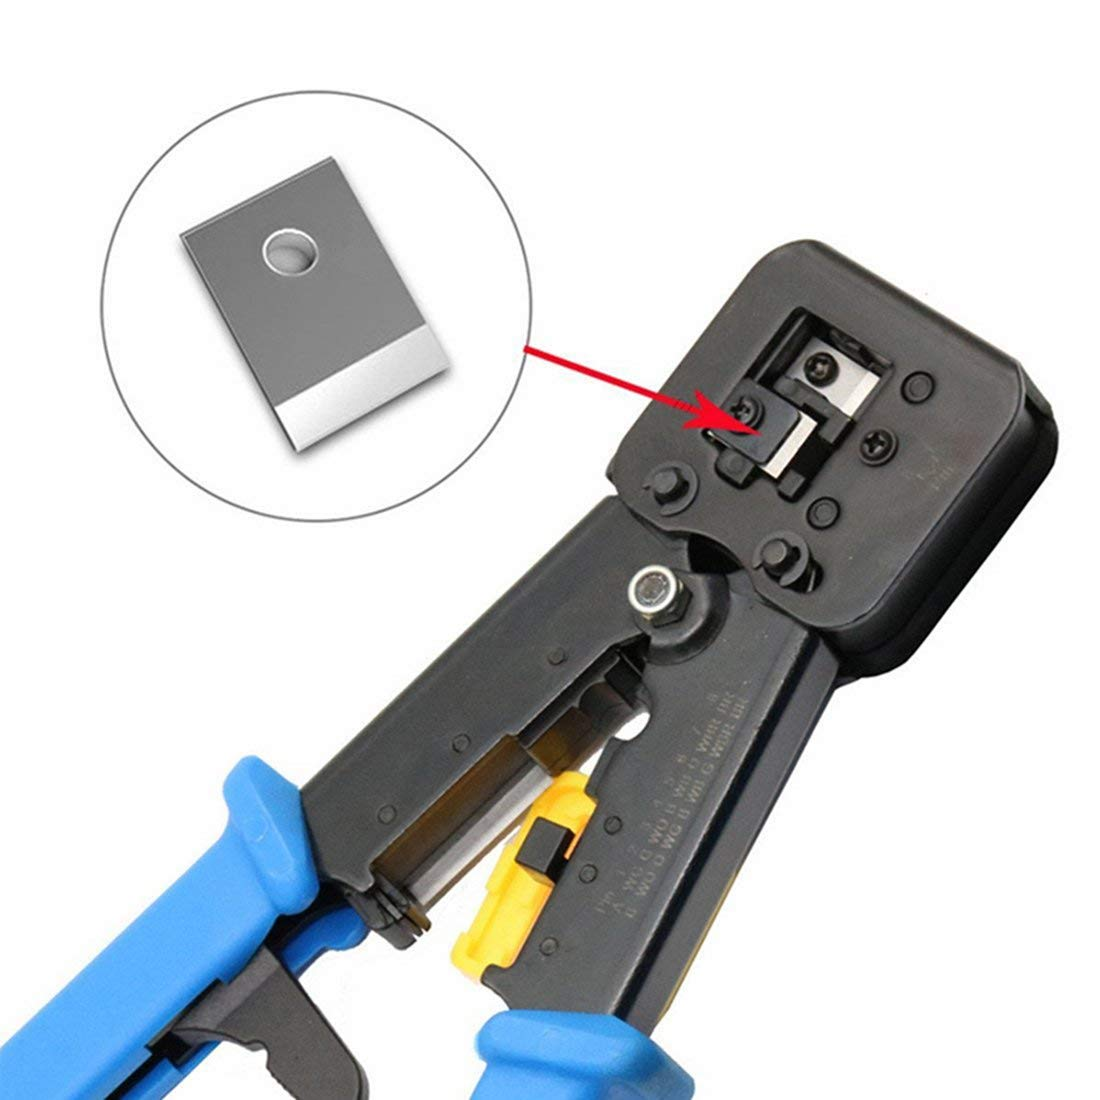 RJ45 Crimp Tool 6P 8P Multi-function Cable Cutter Pass Through Crimper Ethernet Cable Connector Crimping Tool Ratcheting Hand Tools Bonus CAT6 Connector 20 Pack by Ewans (Image #6)